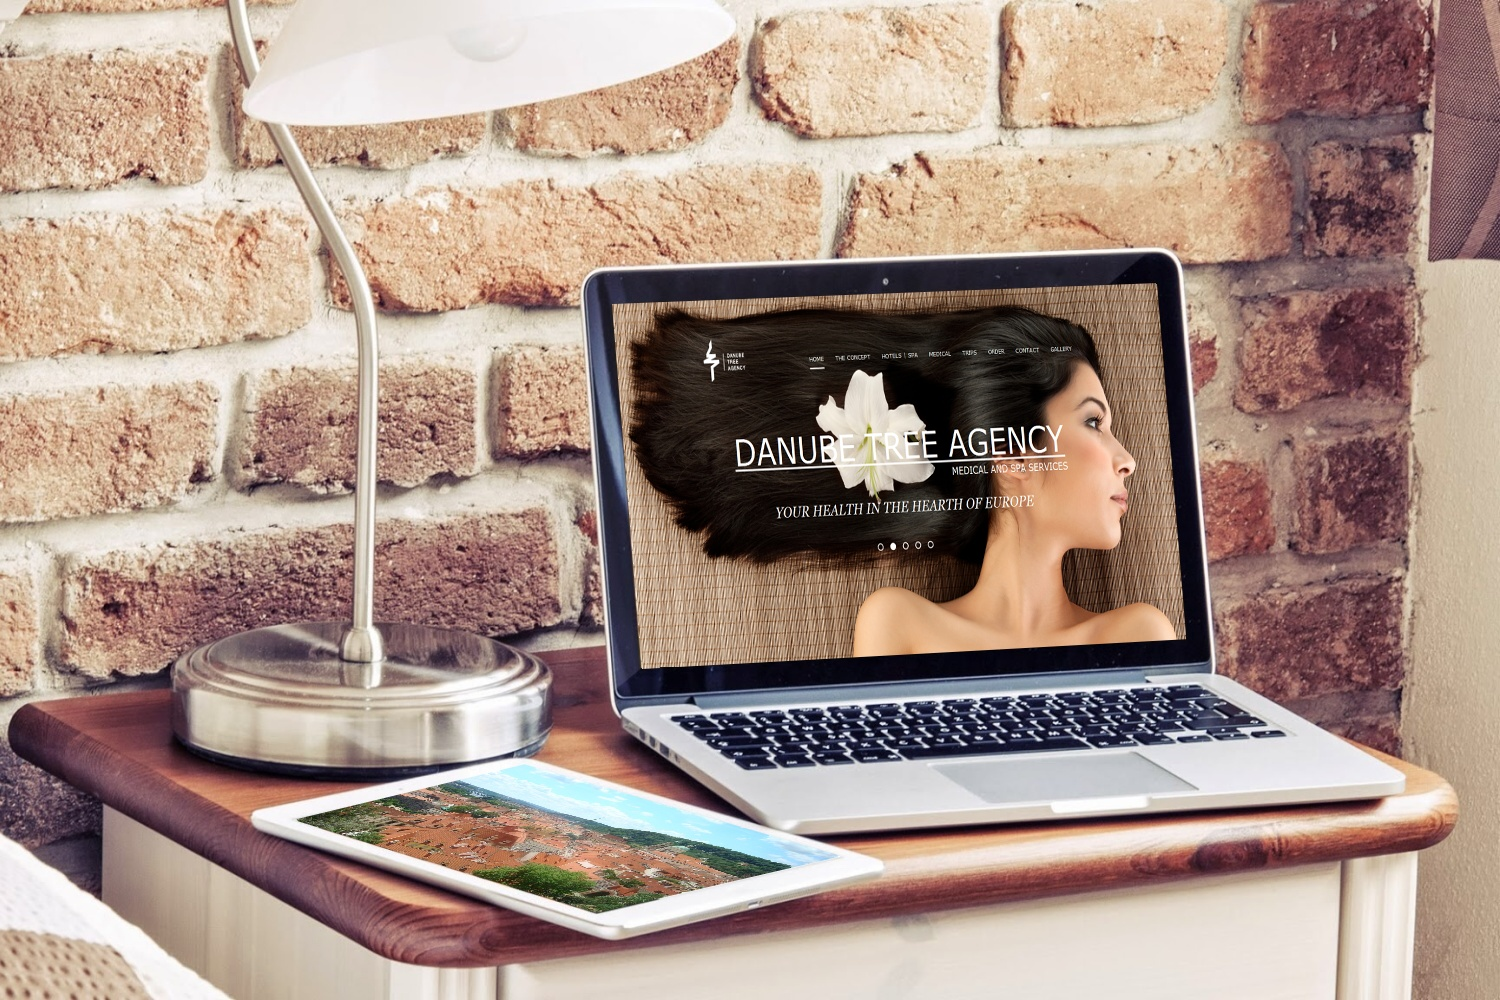 Web a eshop Danube Tree Agency